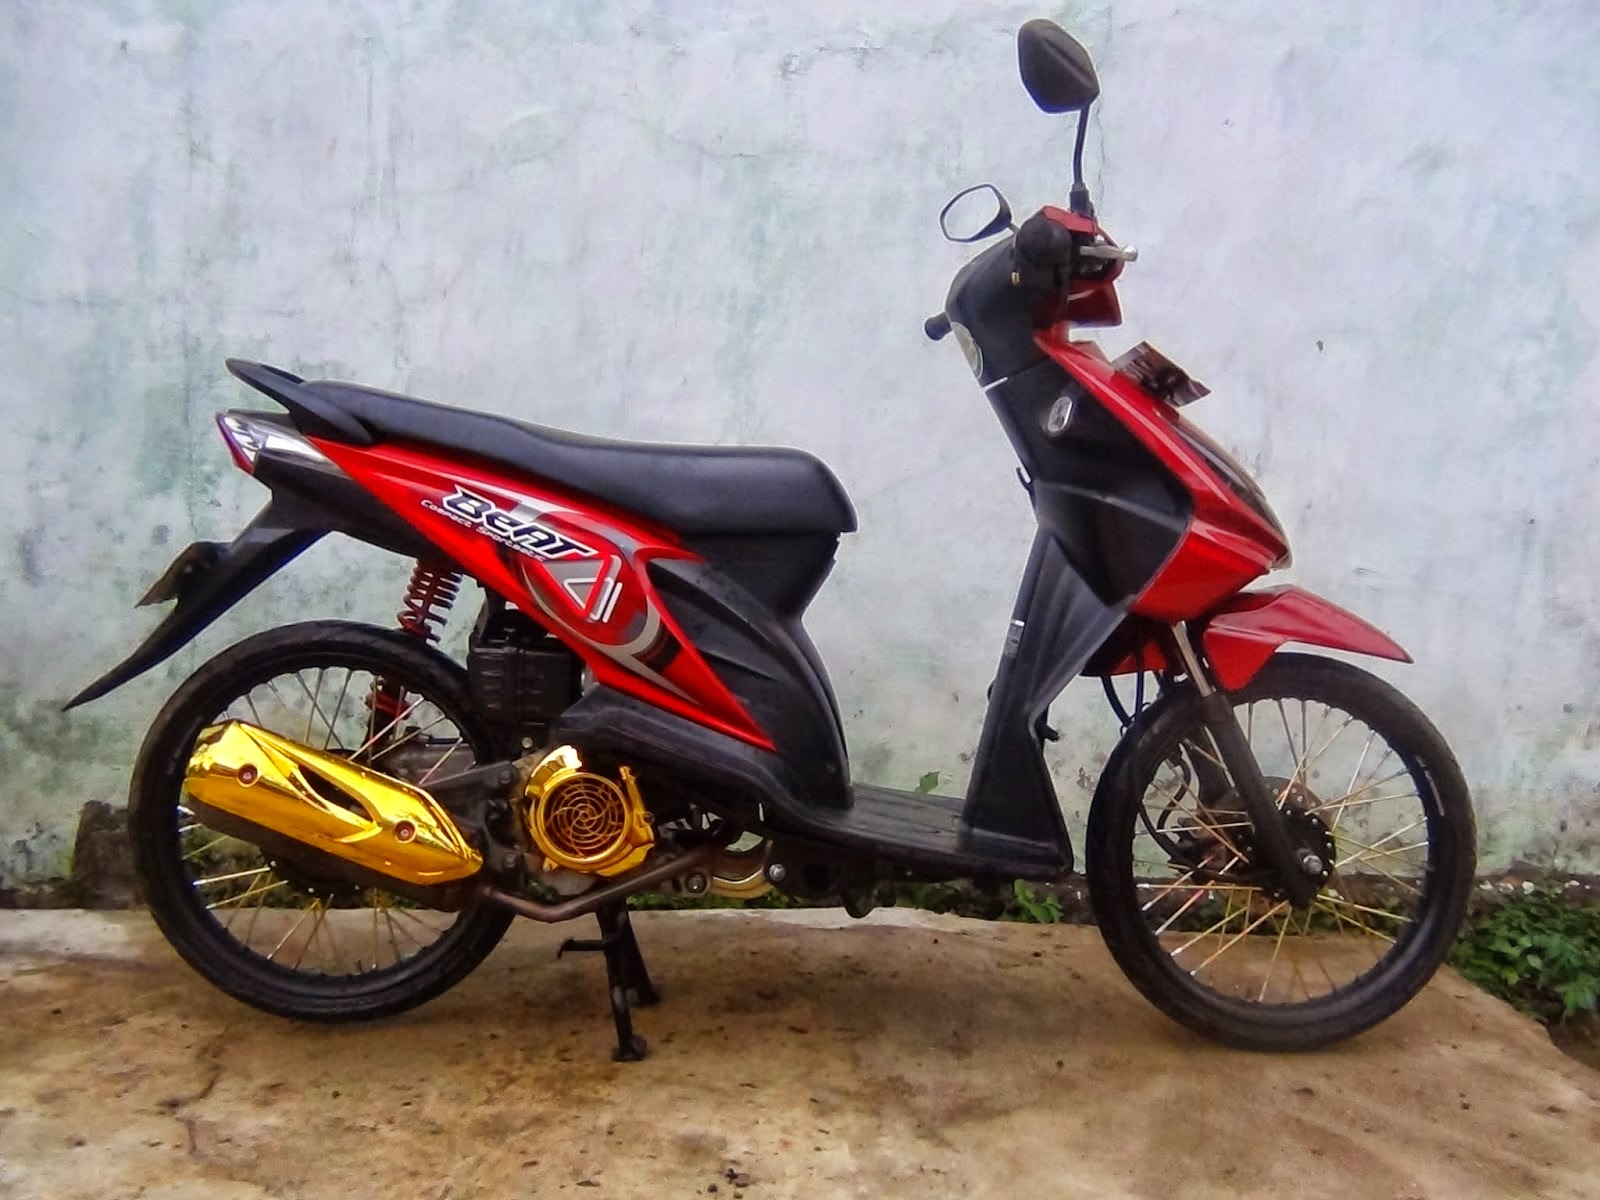 Modifikasi Beat Fi Velg Jari Jari